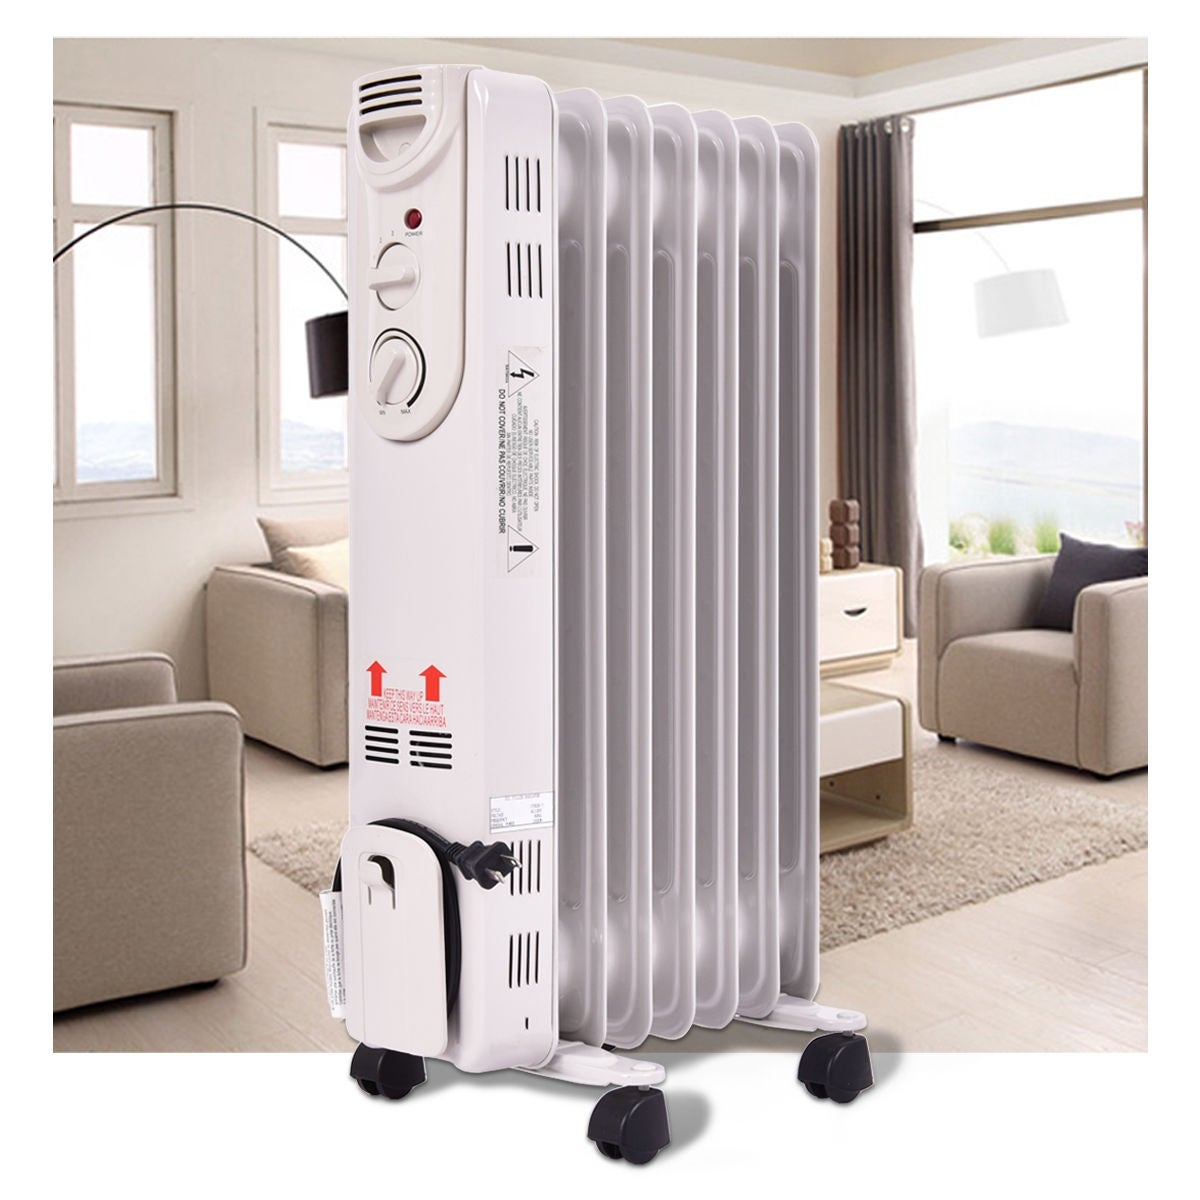 Costway 1500W Electric Oil Filled Radiator Space Heater 5-Fin Thermostat  Room Radiant - Free Shipping Today - Overstock.com - 24358258